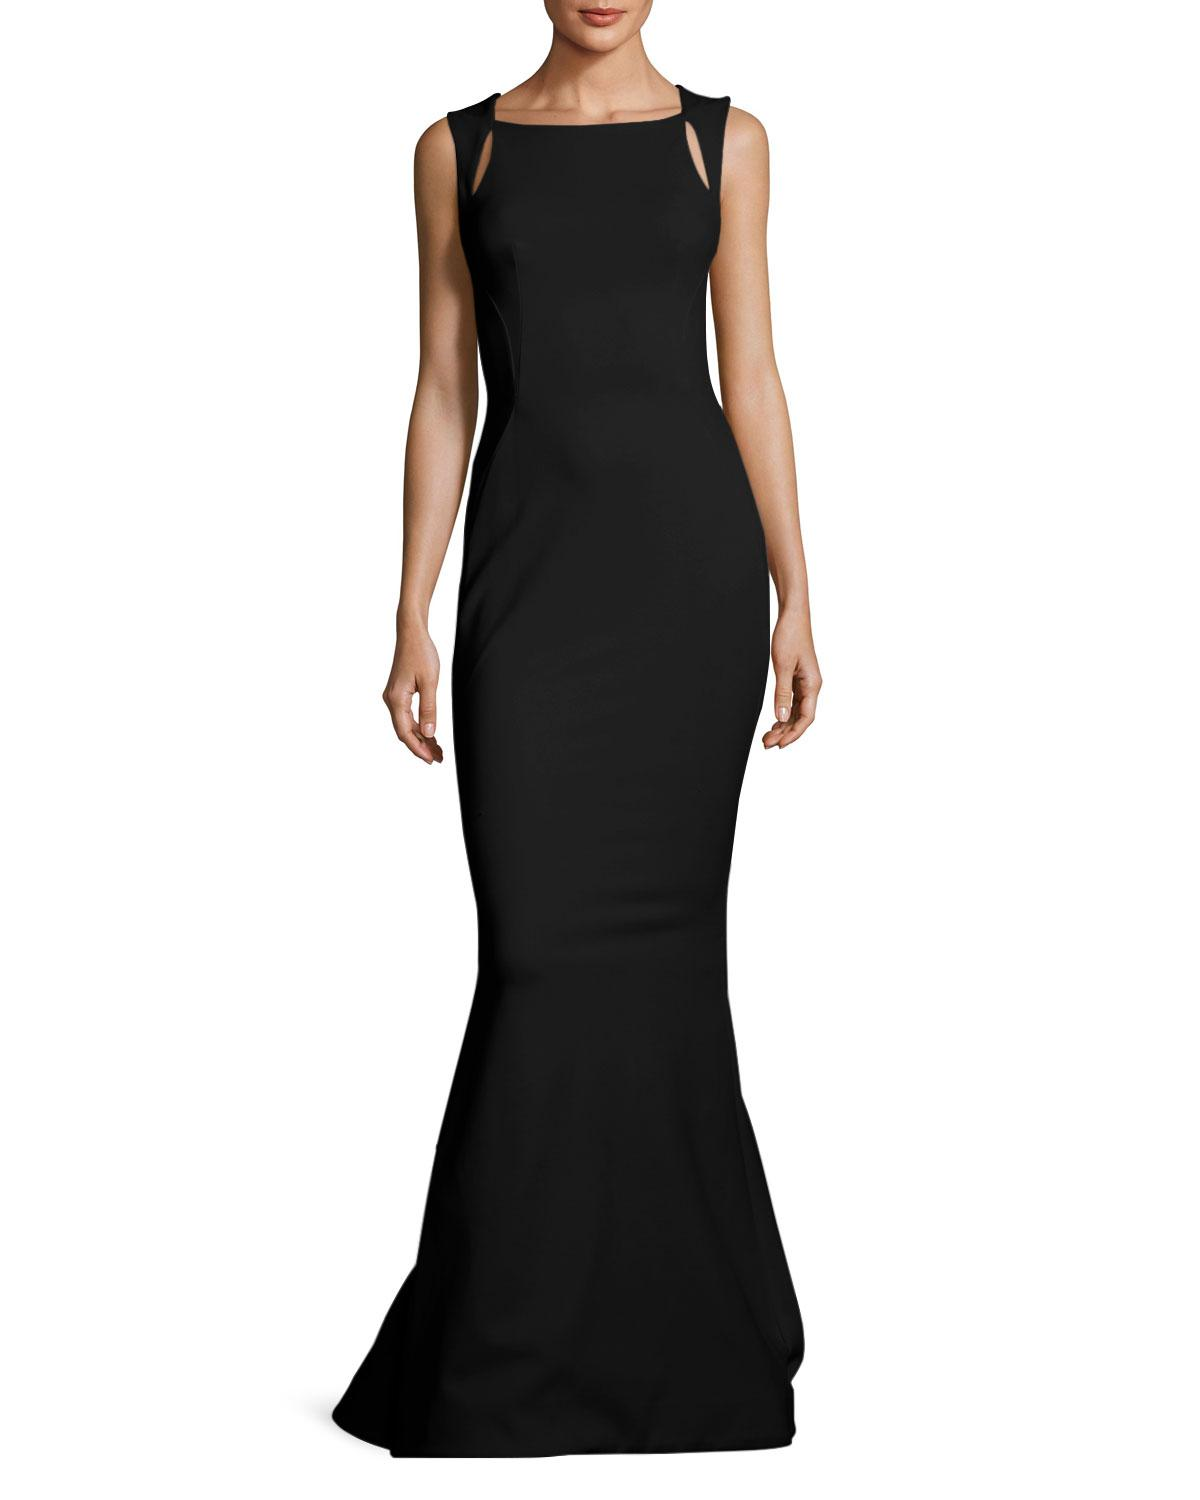 Lyst - Zac Posen Sleeveless Cutout-shoulder Bondage Jersey Evening ...